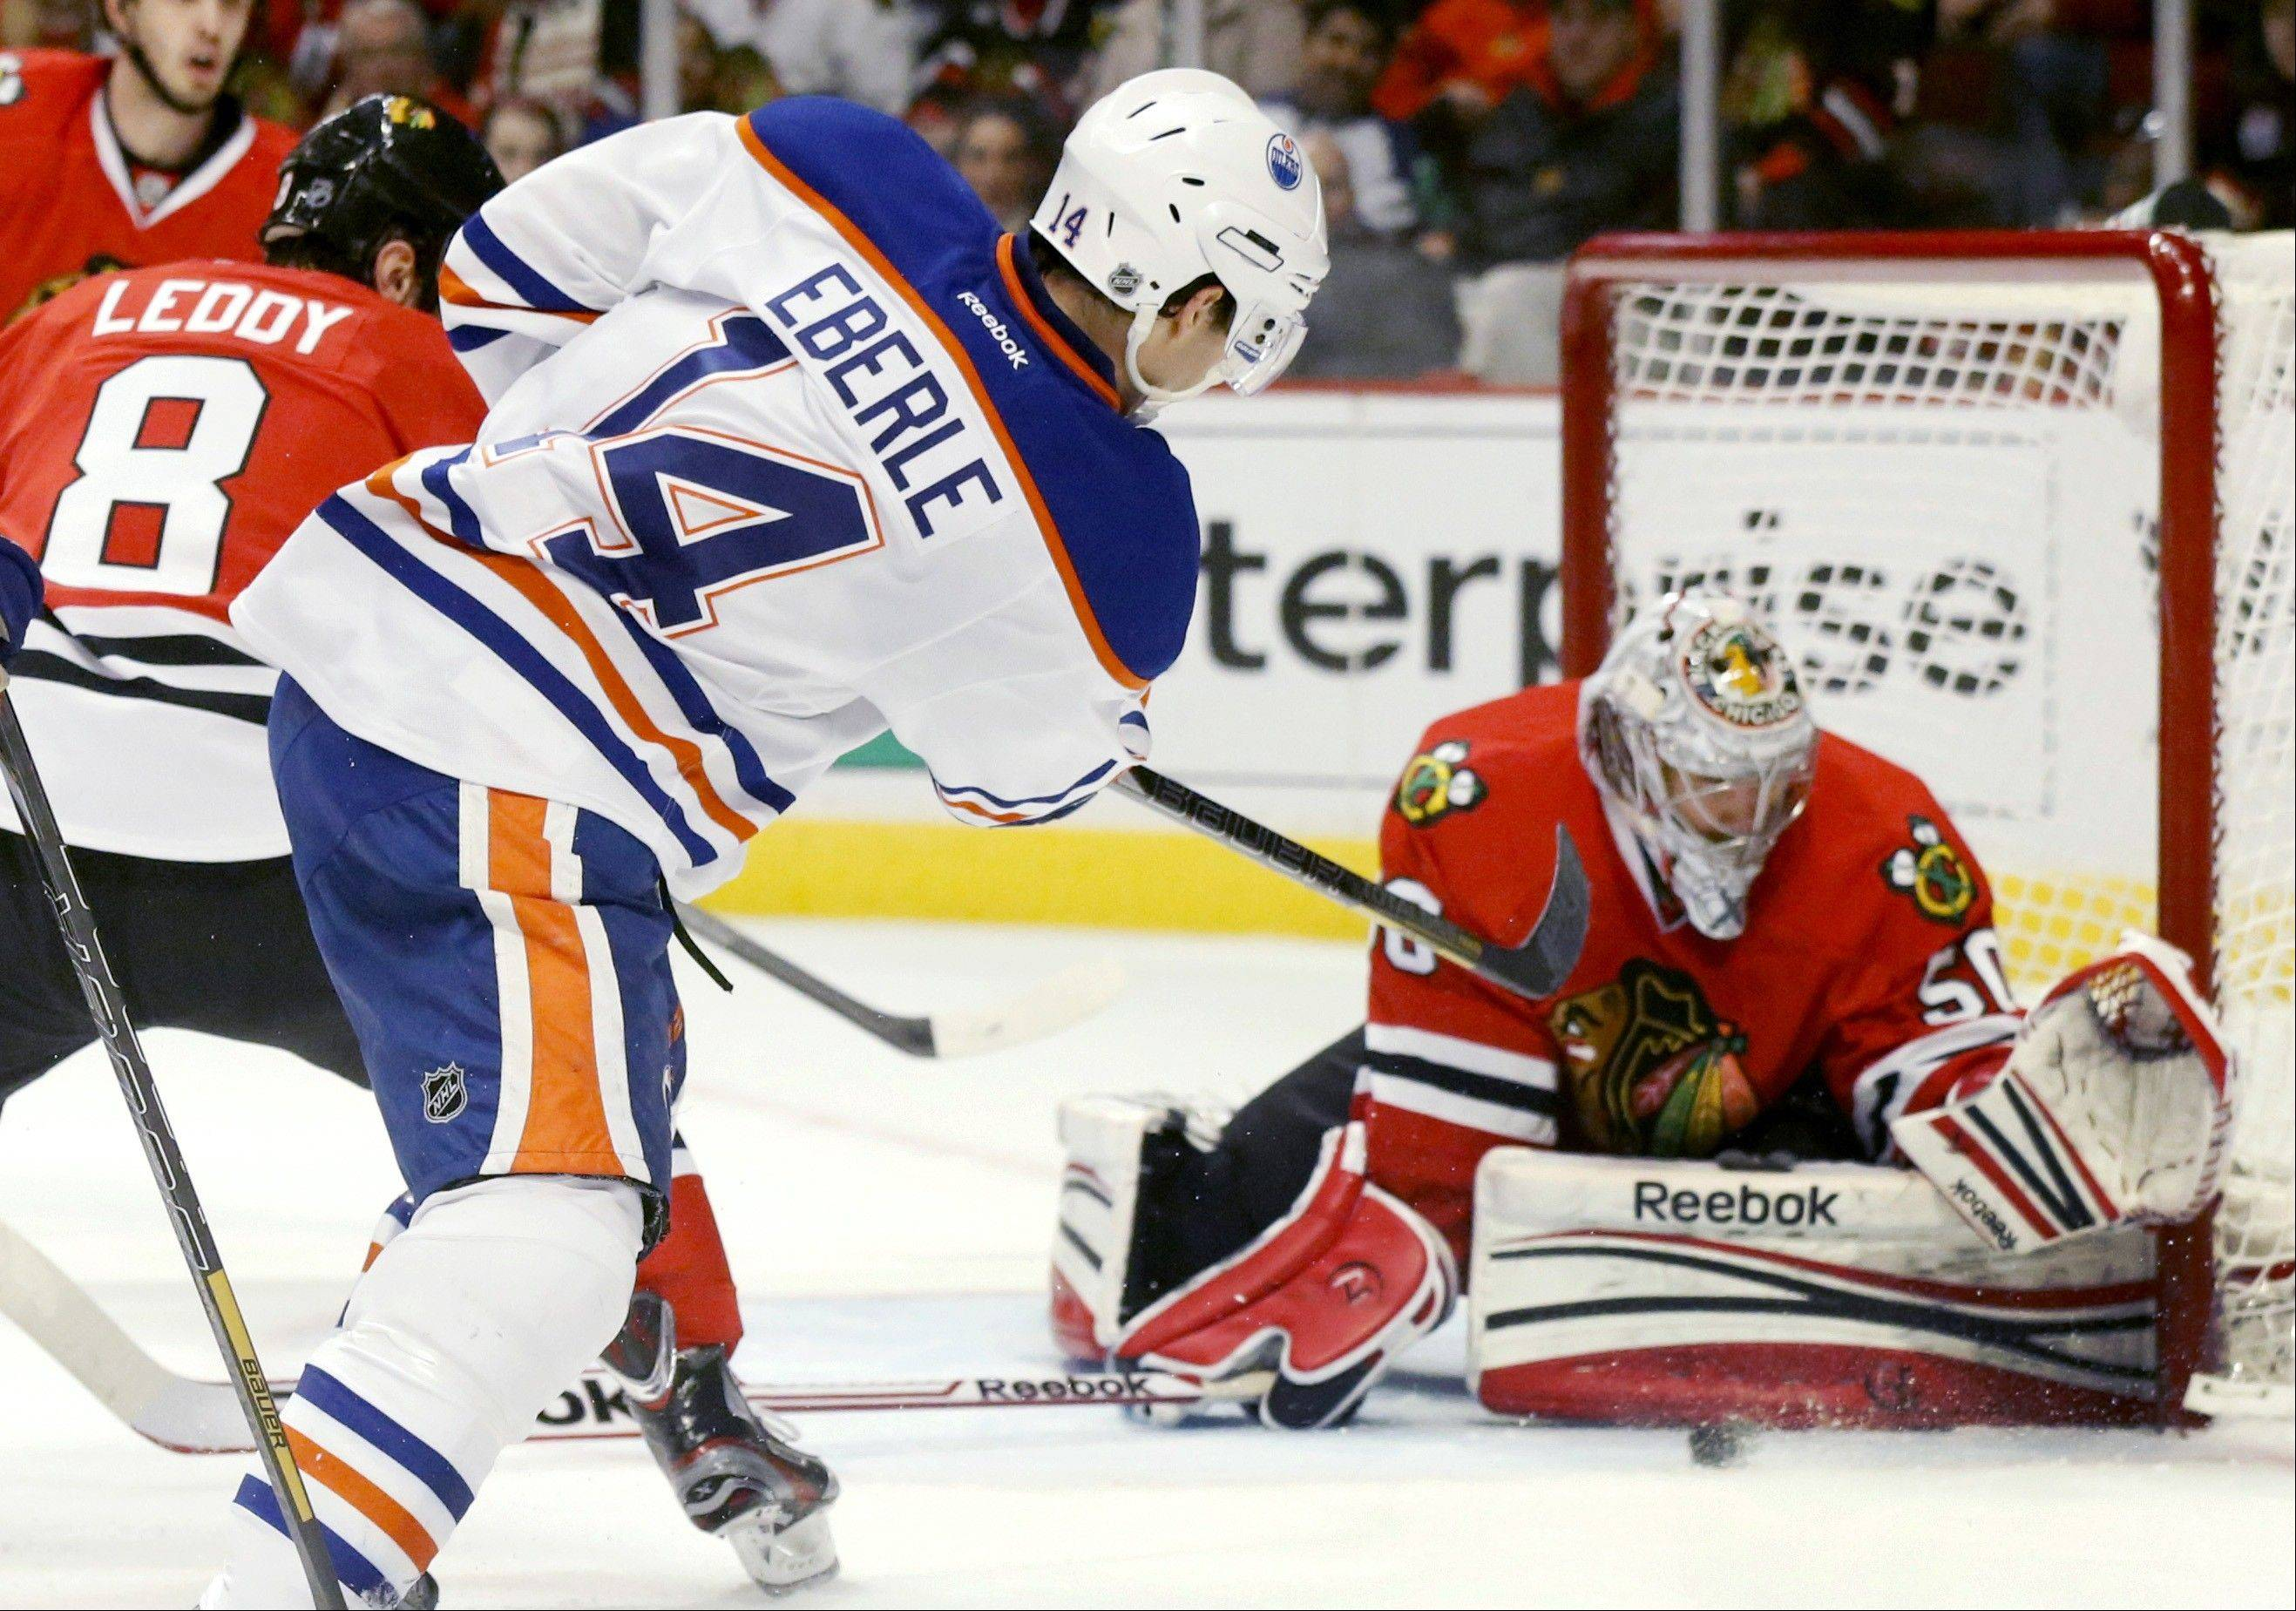 ASSOCIATED PRESSChicago Blackhawks goalie Corey Crawford makes a save on a shot by Edmonton Oilers center Jordan Eberle (14) during the first period. Crawford replaced Emery after Emery gave up three goals in the first.